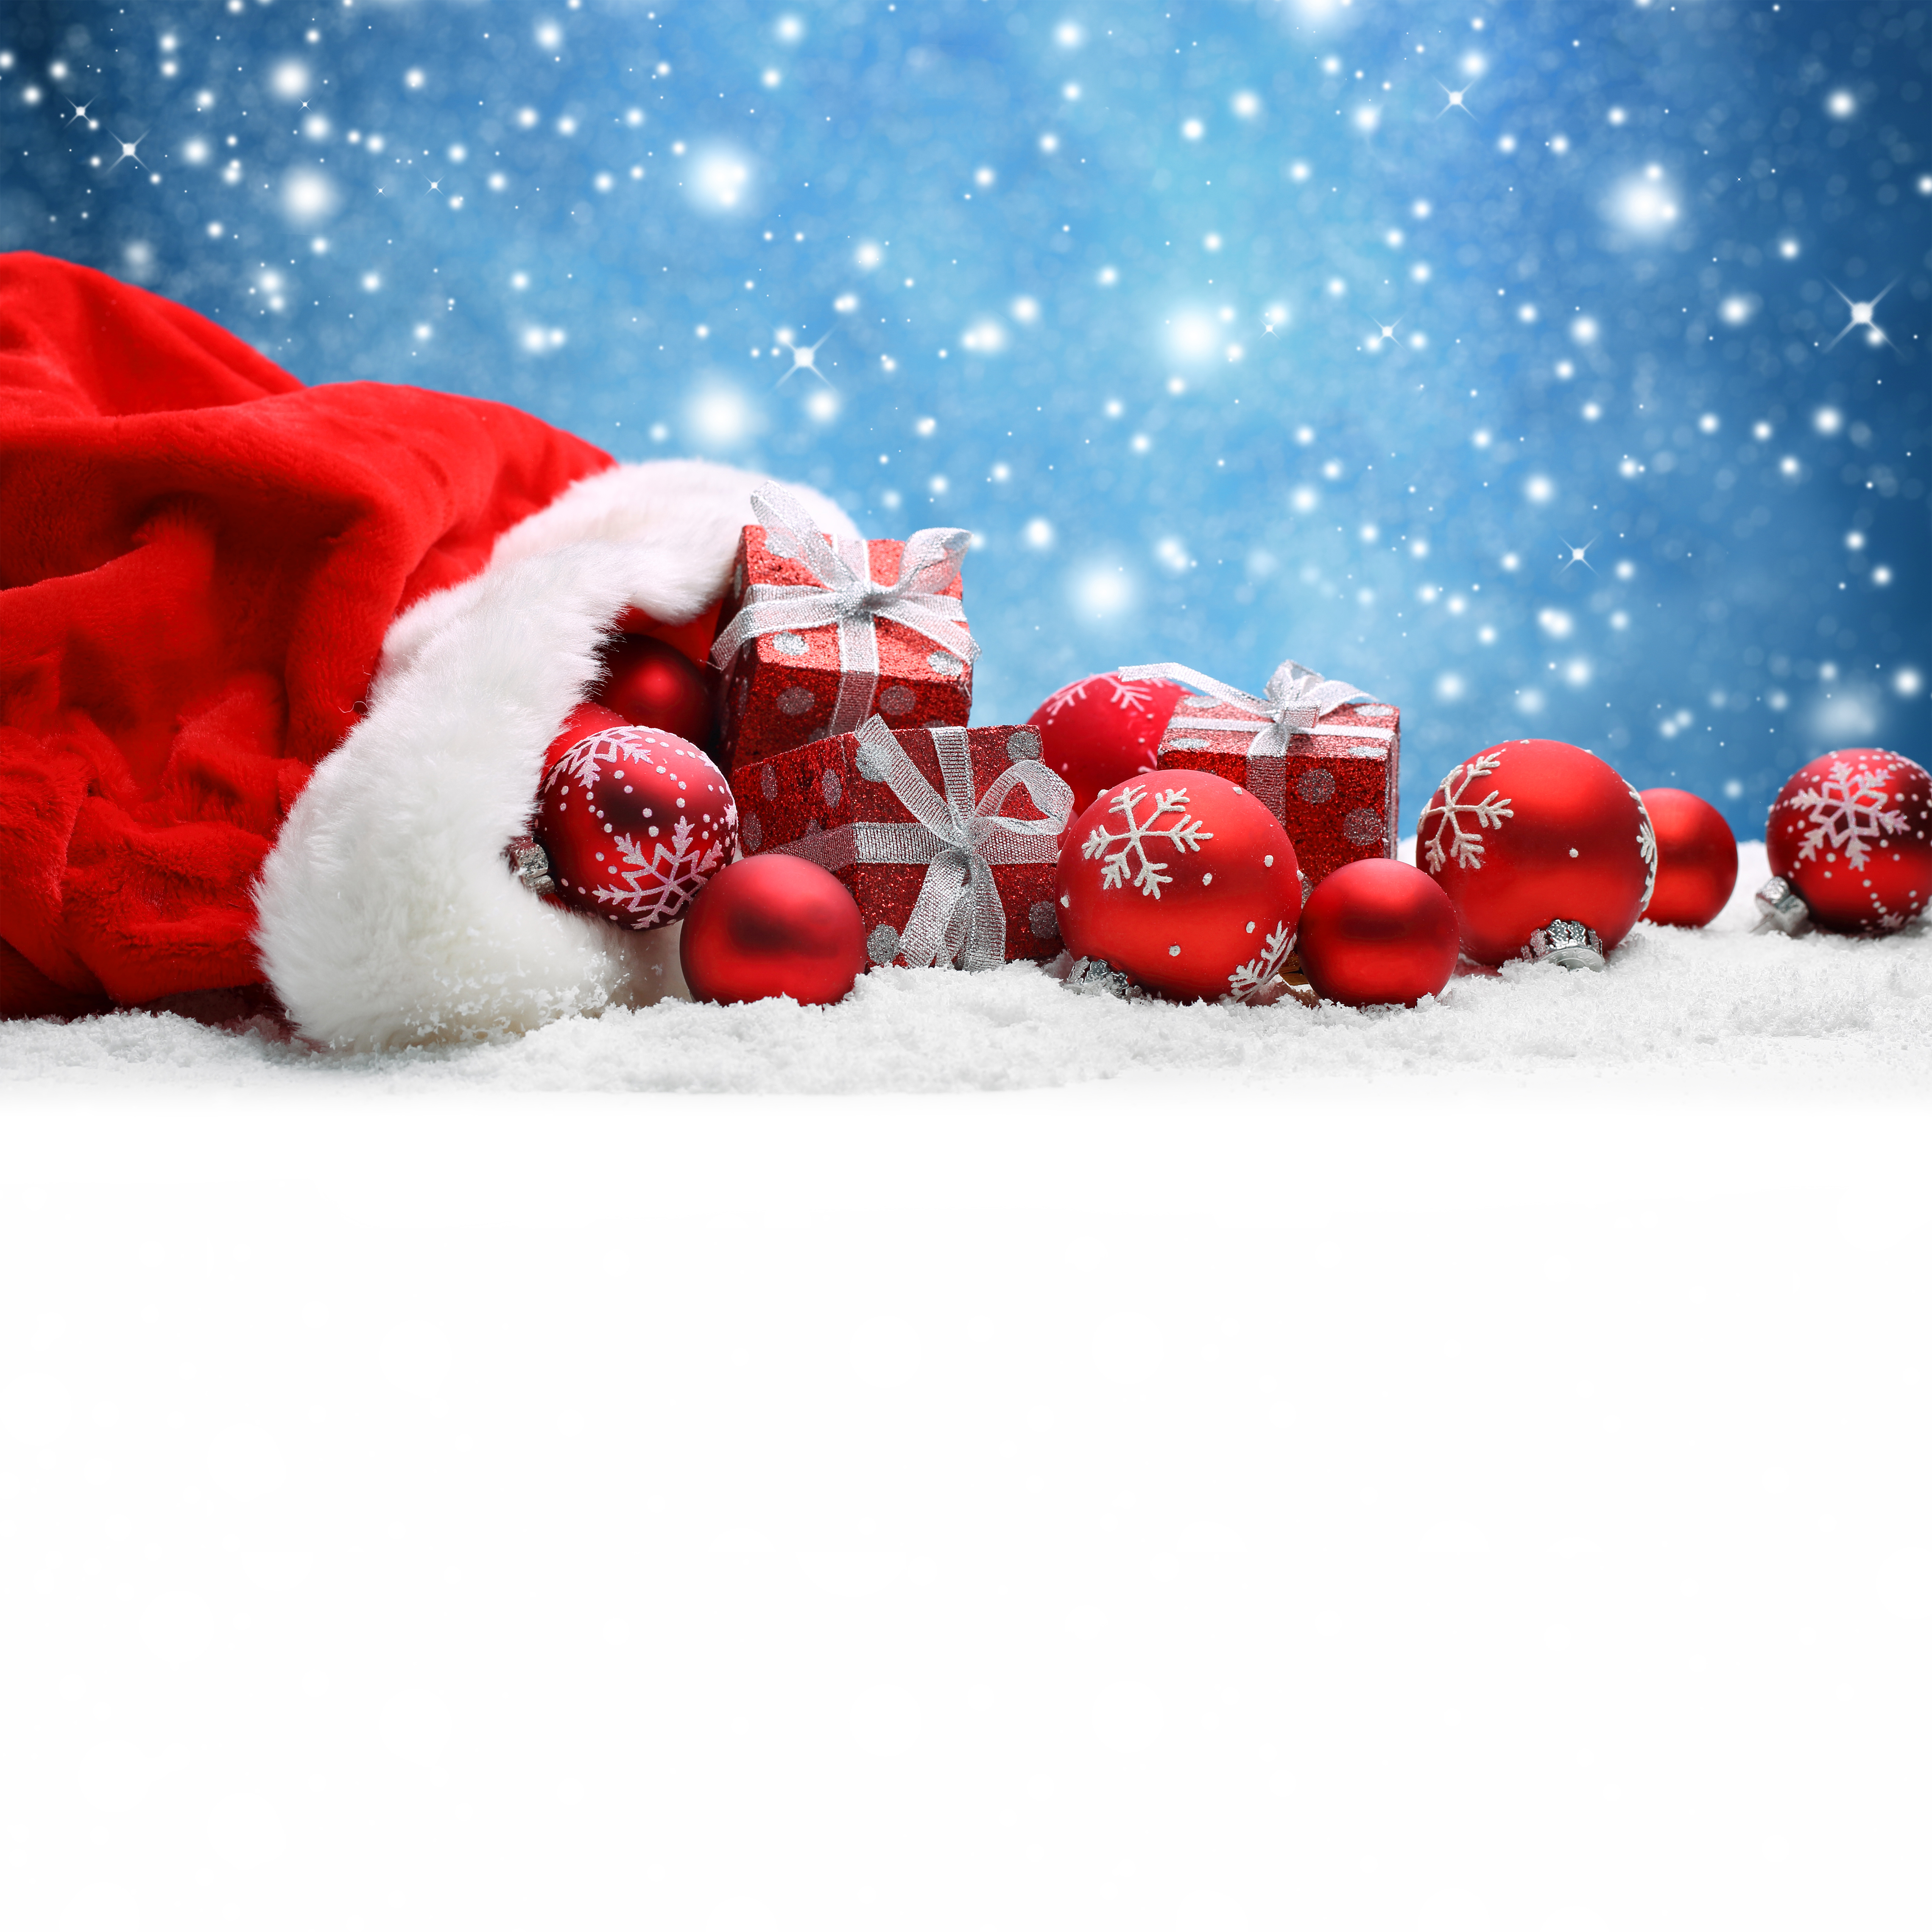 Free Falling In Love Wallpaper Snowy Christmas Background With Red Christmas Balls